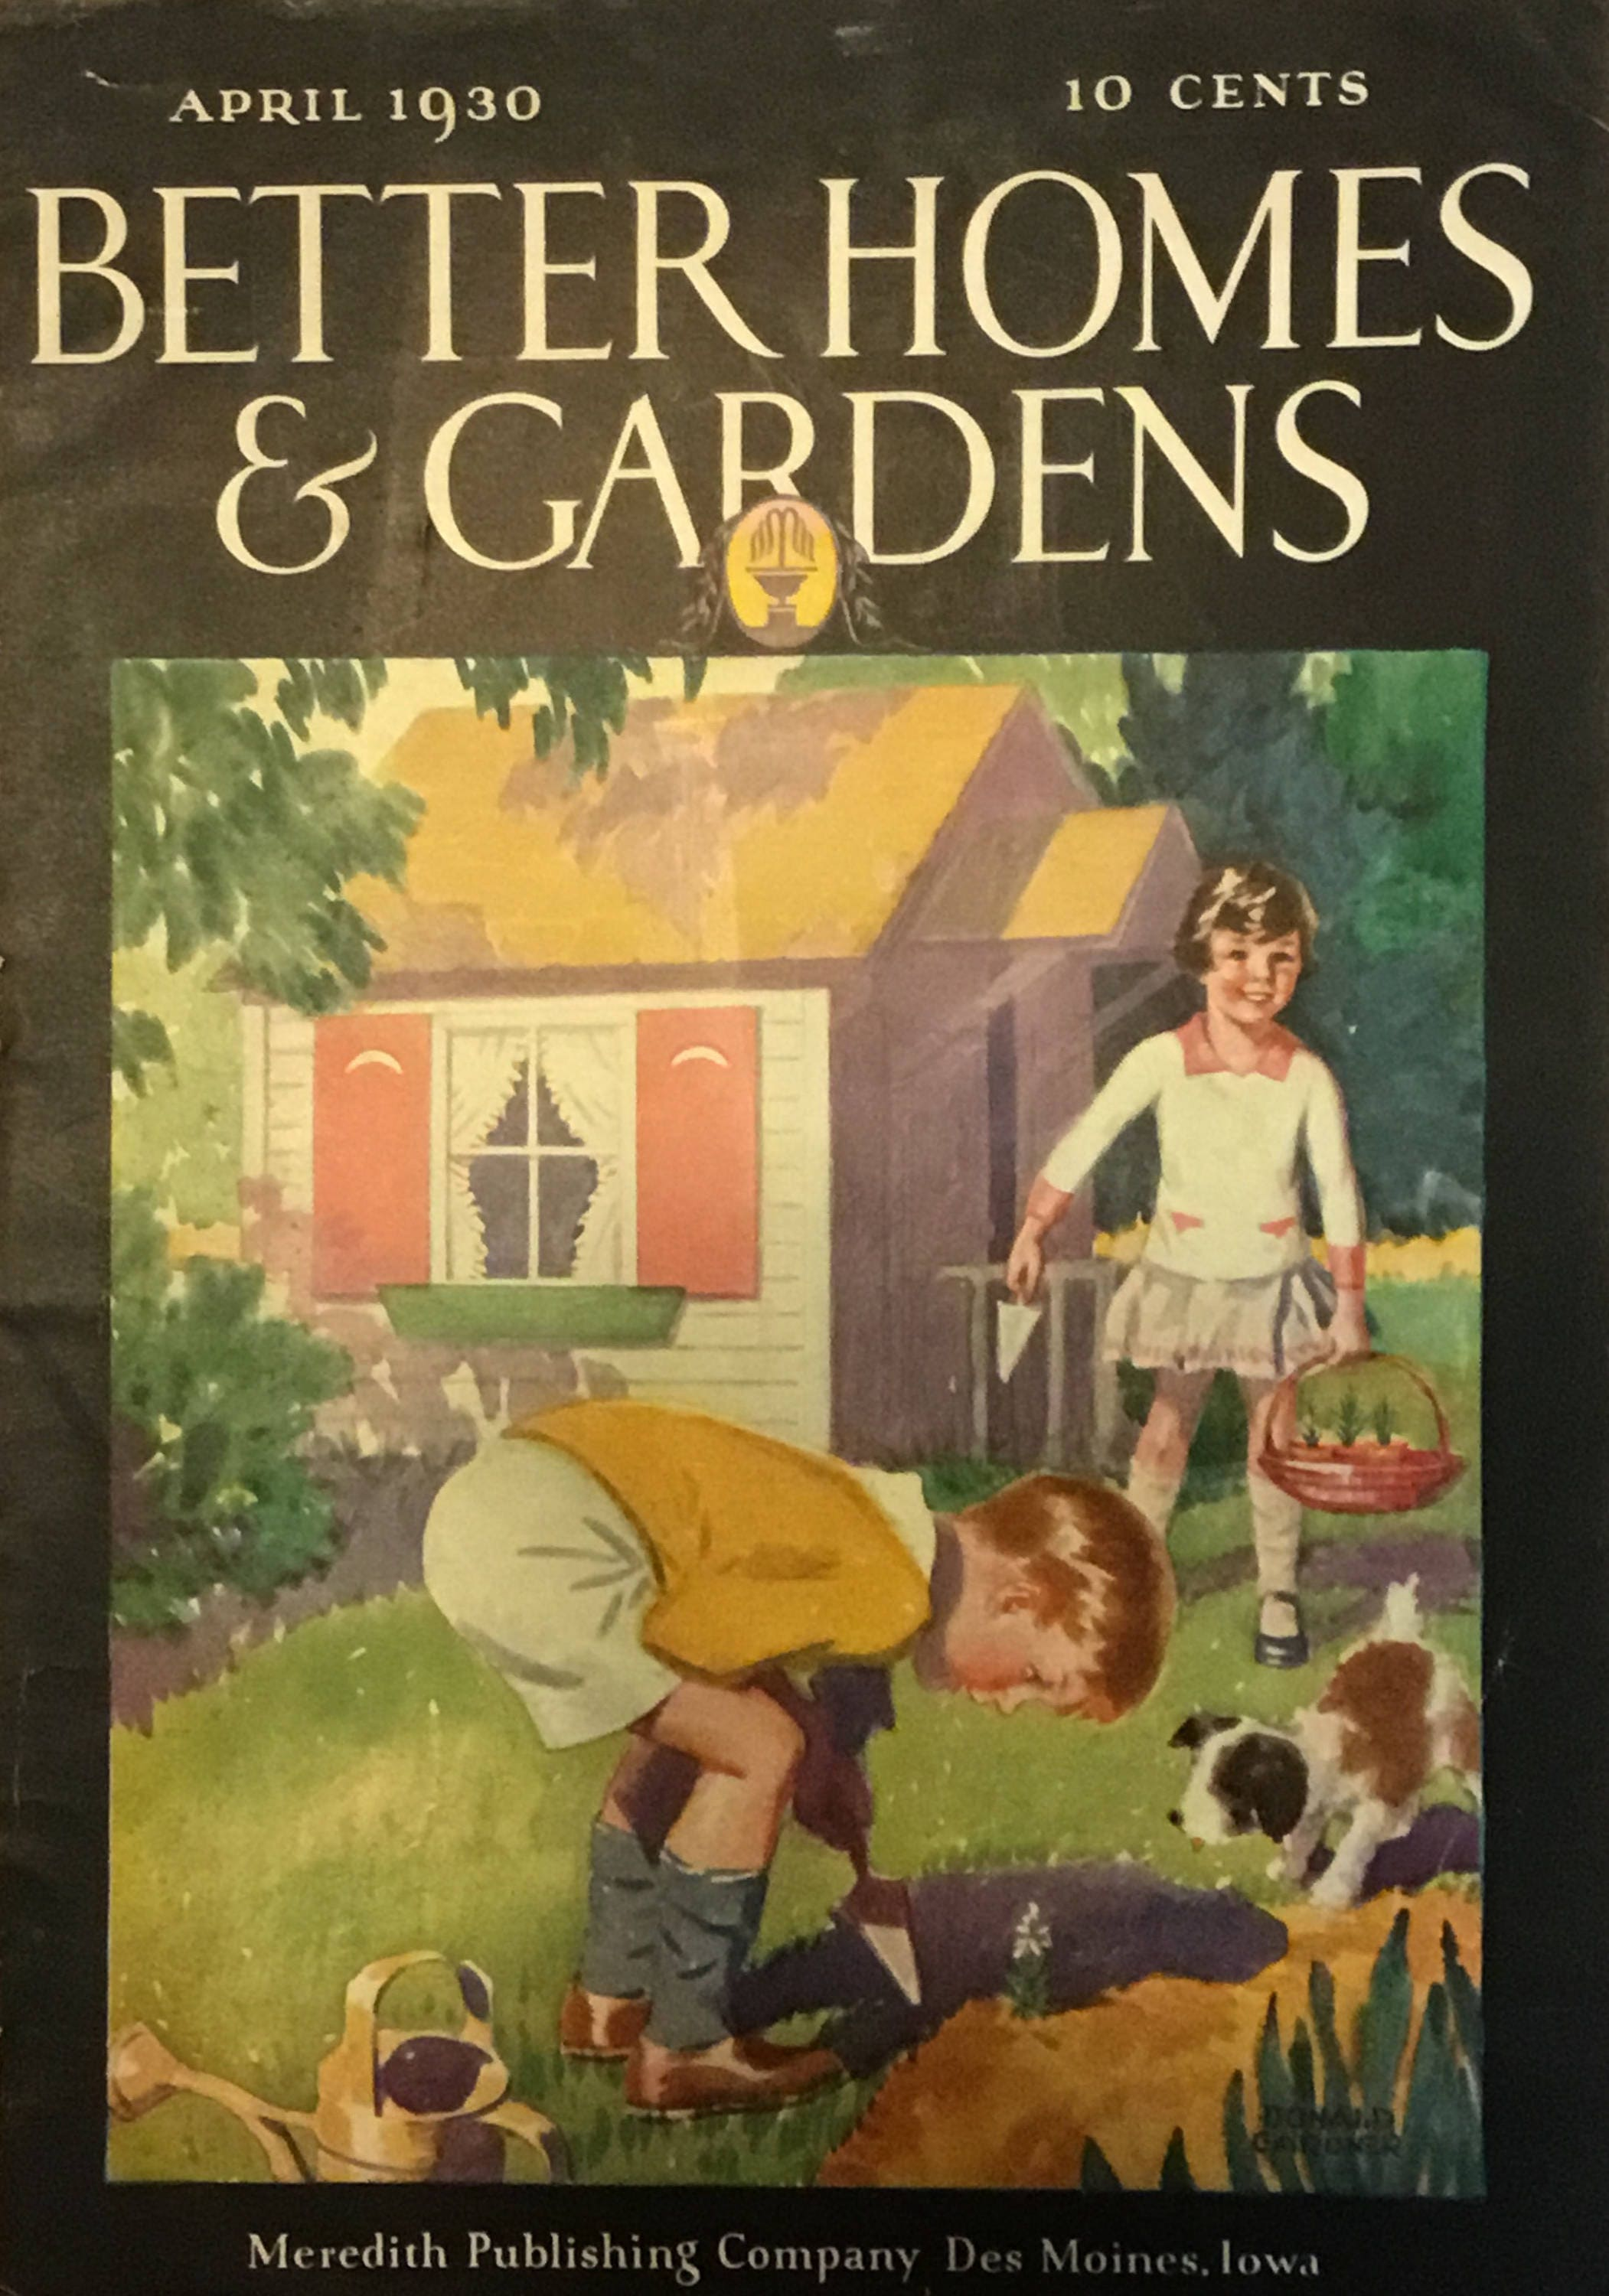 Better Homes and Gardens Original Cover, 8x12 inches, April 1930